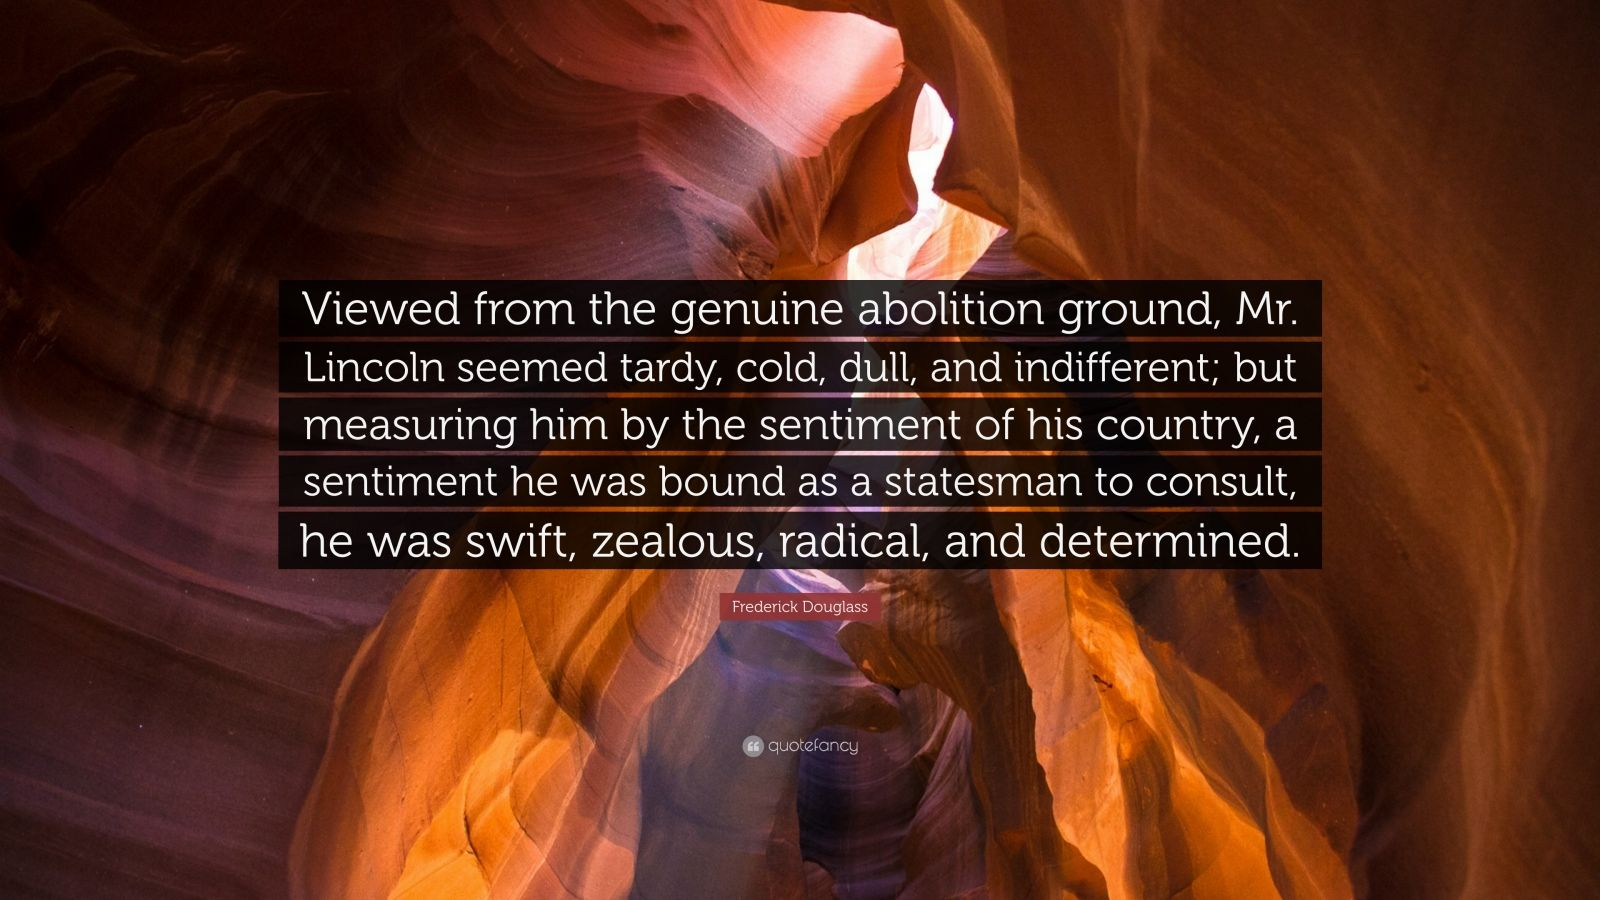 """Frederick Douglass Quote: """"Viewed from the genuine abolition ground, Mr. Lincoln seemed tardy, cold, dull, and indifferent; but measuring him by the sentiment of his country, a sentiment he was bound as a statesman to consult, he was swift, zealous, radical, and determined."""""""